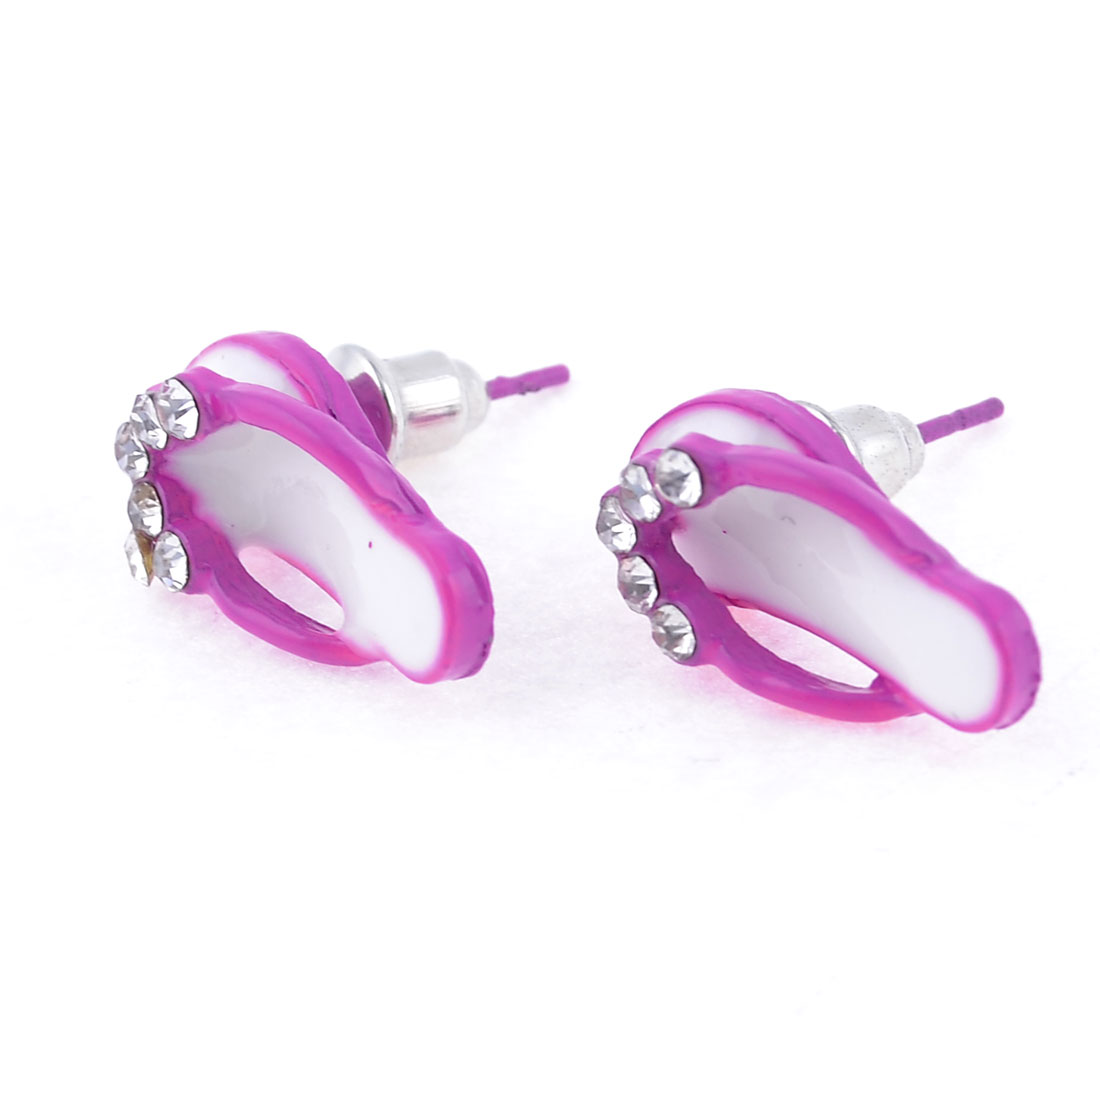 2Pcs Rhinestone Detail Slipper Ear Decor Stud Earrings Pink for Women